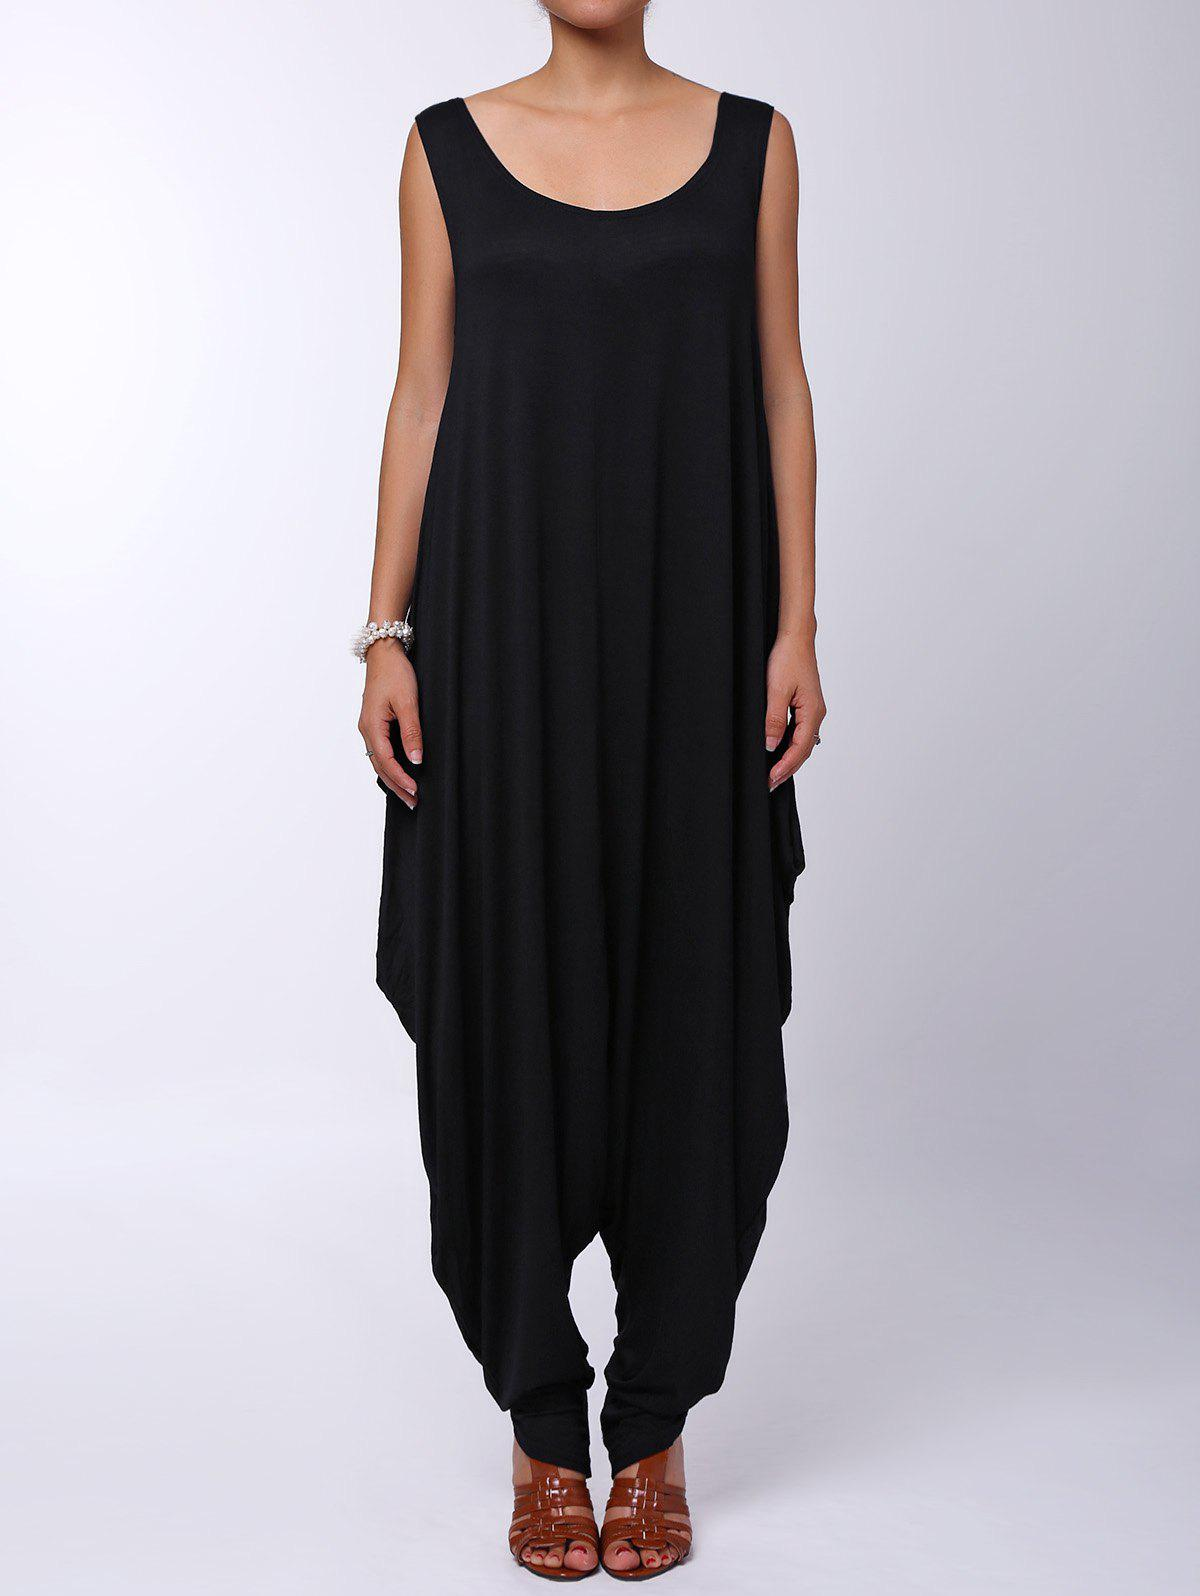 Sexy Spaghetti Strap Sleeveless Loose-Fitting Solid Color Women's Jumpsuit - BLACK S